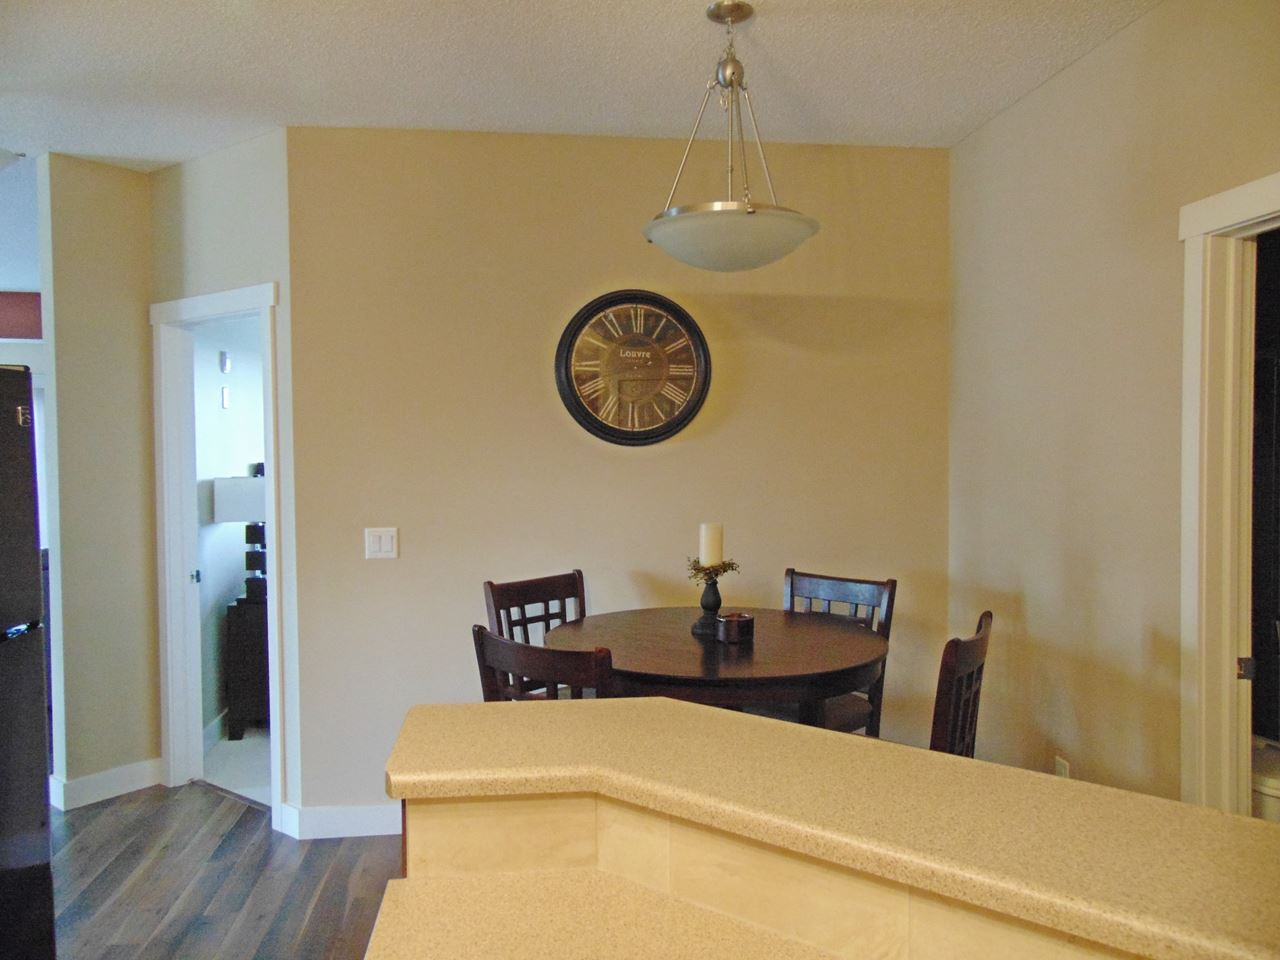 Photo 11: 203 4922 52 Street: Gibbons Condo for sale : MLS® # E4071334